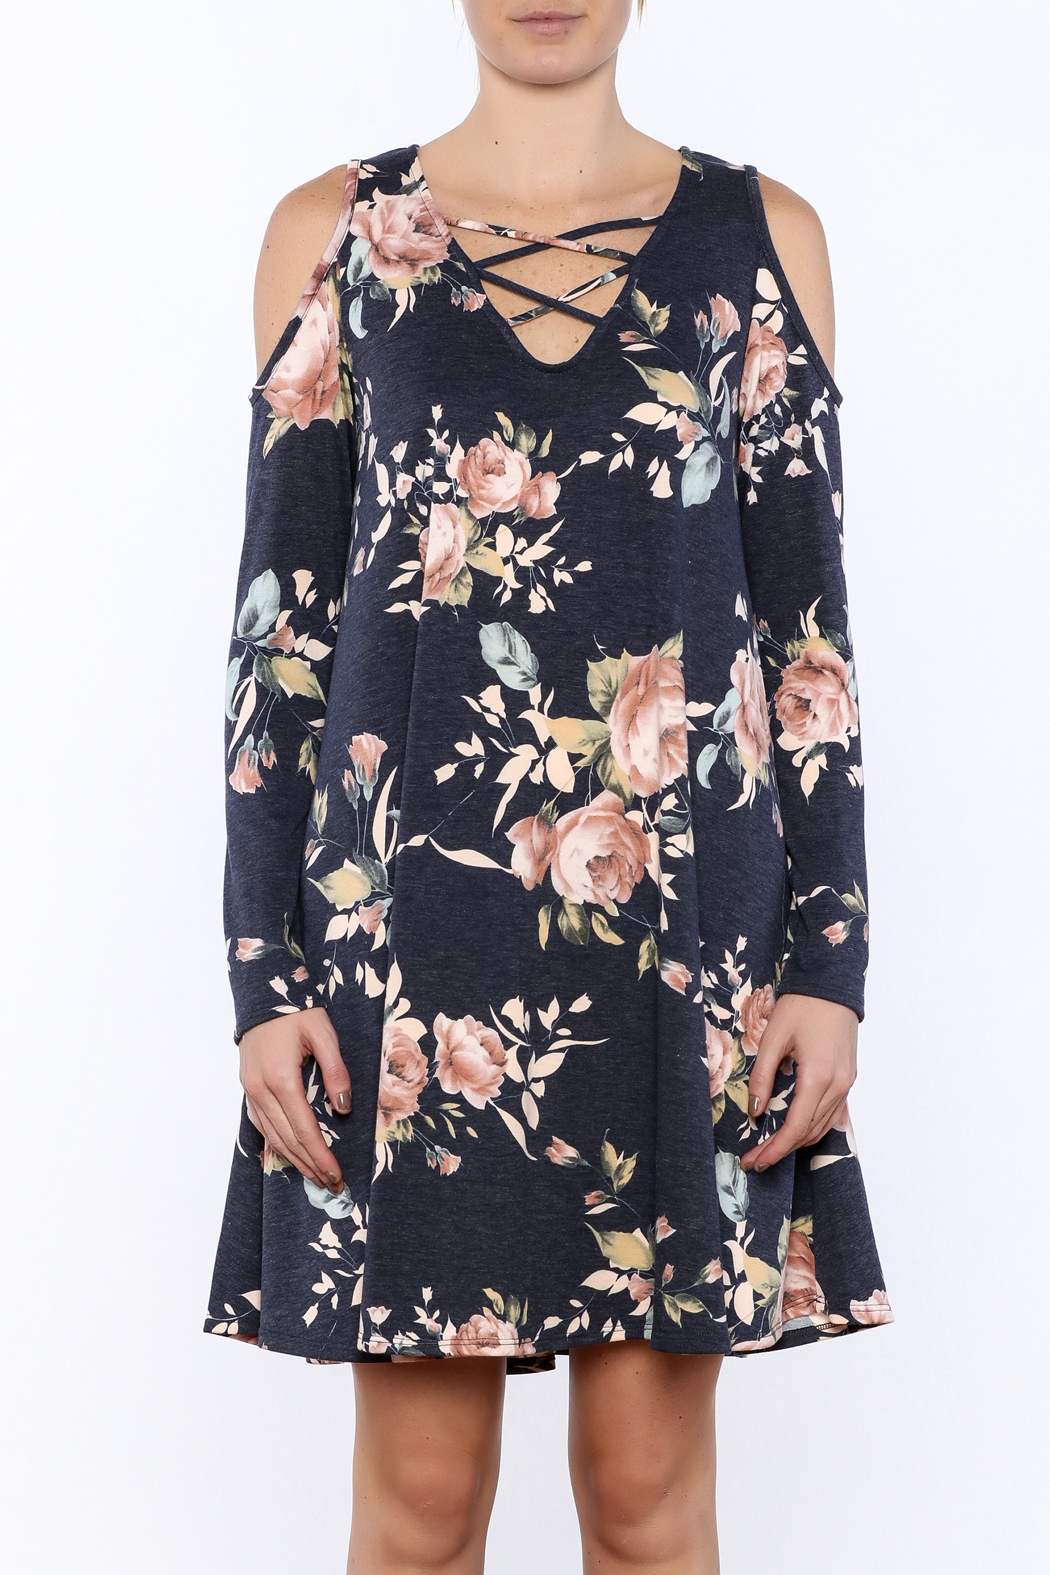 573f343e1e0483 CY Fashion Floral Cold Shoulder Dress from Idaho by Garment District ...